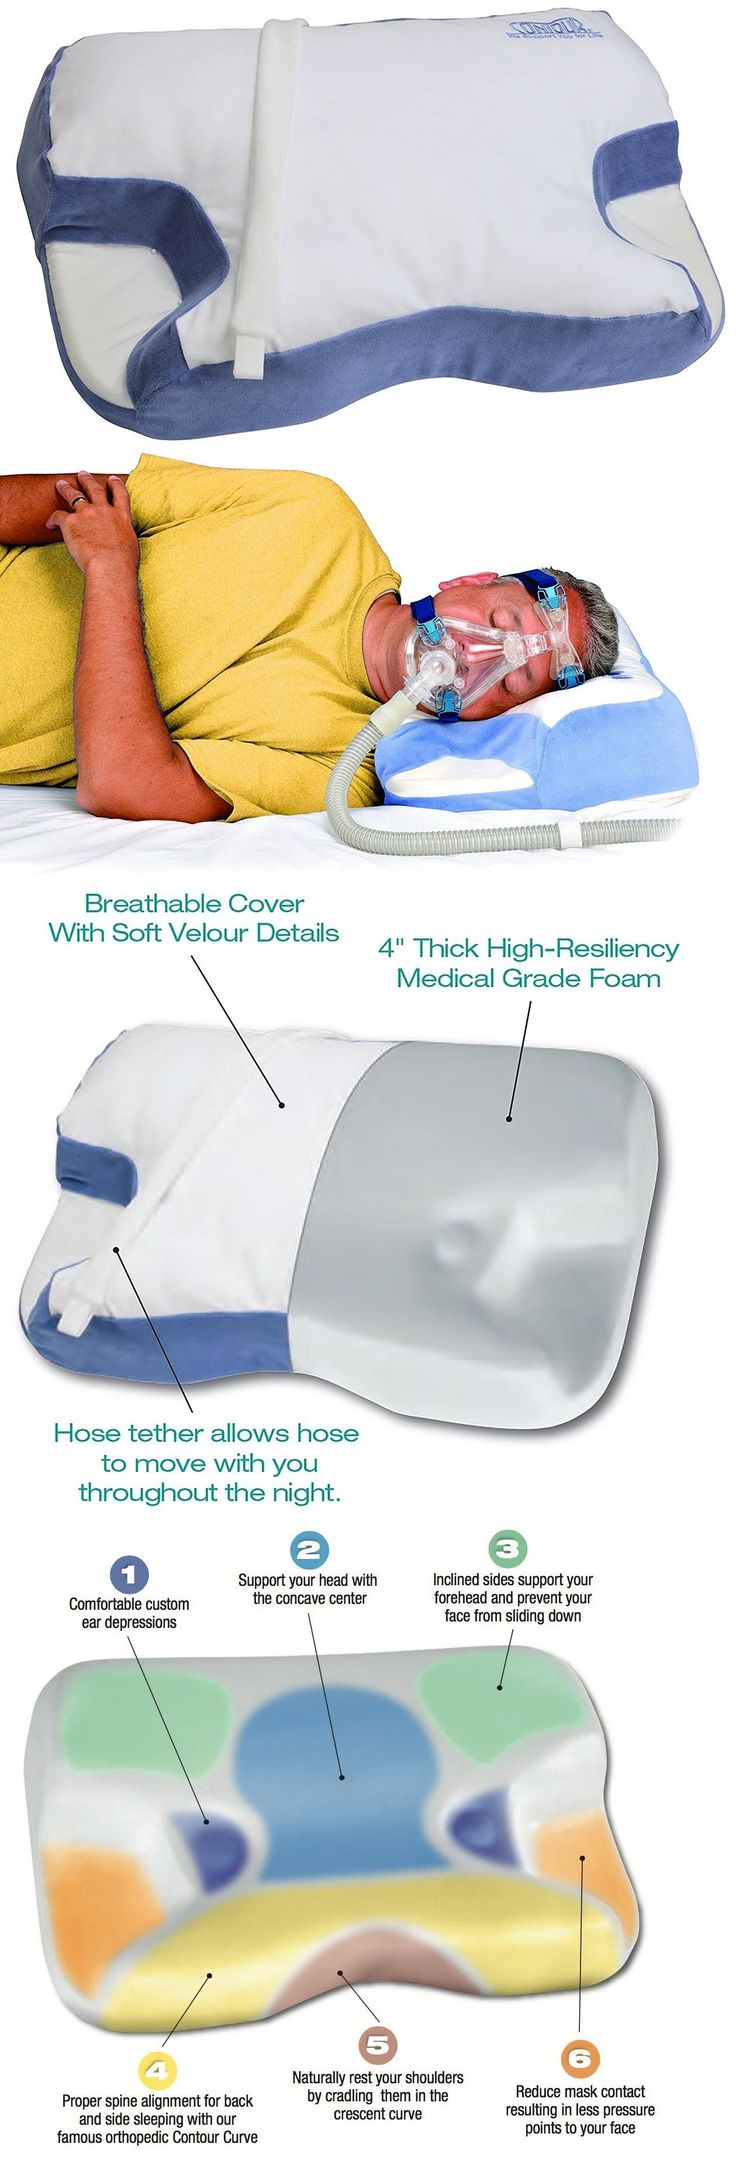 Other Sleeping Aids: Contour Standard 2.0 Cpap Bipap Device Support Sleep Apnea Pillow New Improved -> BUY IT NOW ONLY: $49.95 on eBay!